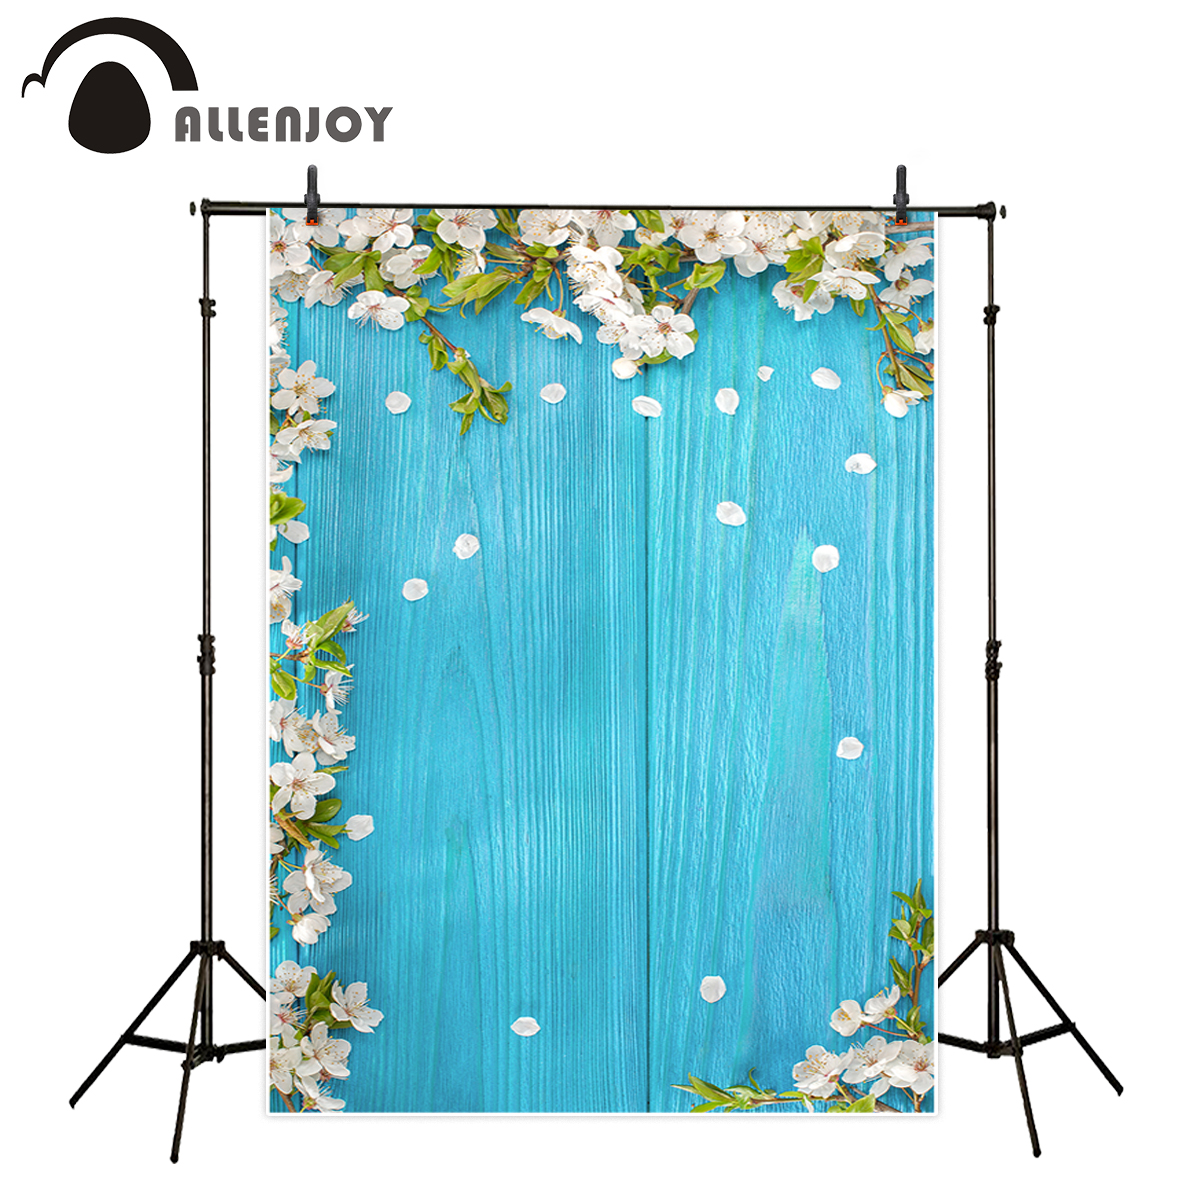 Allenjoy photography backdrop spring white cute flowers old wooden board background photo studio new design camera fotografica 5x7ft white backdrop board photo background photography white studio cloth flower rattan corridor